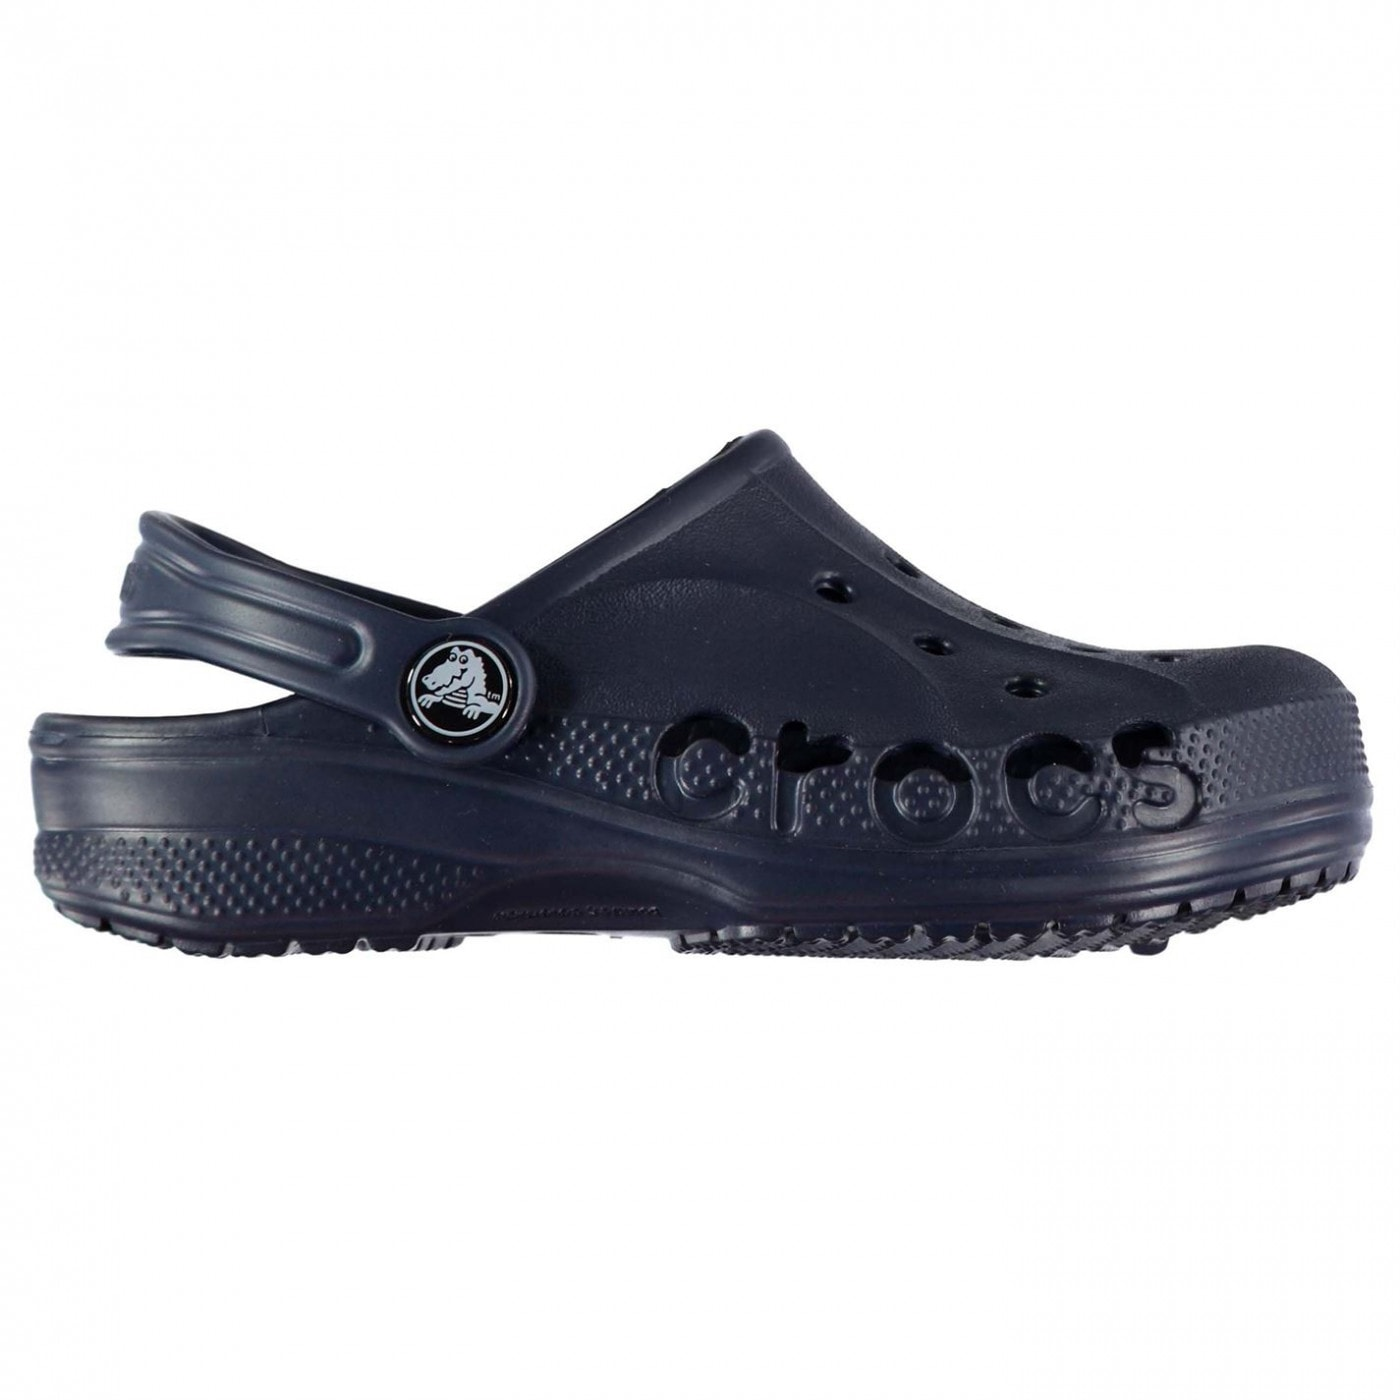 Crocs Baya Infants Clogs